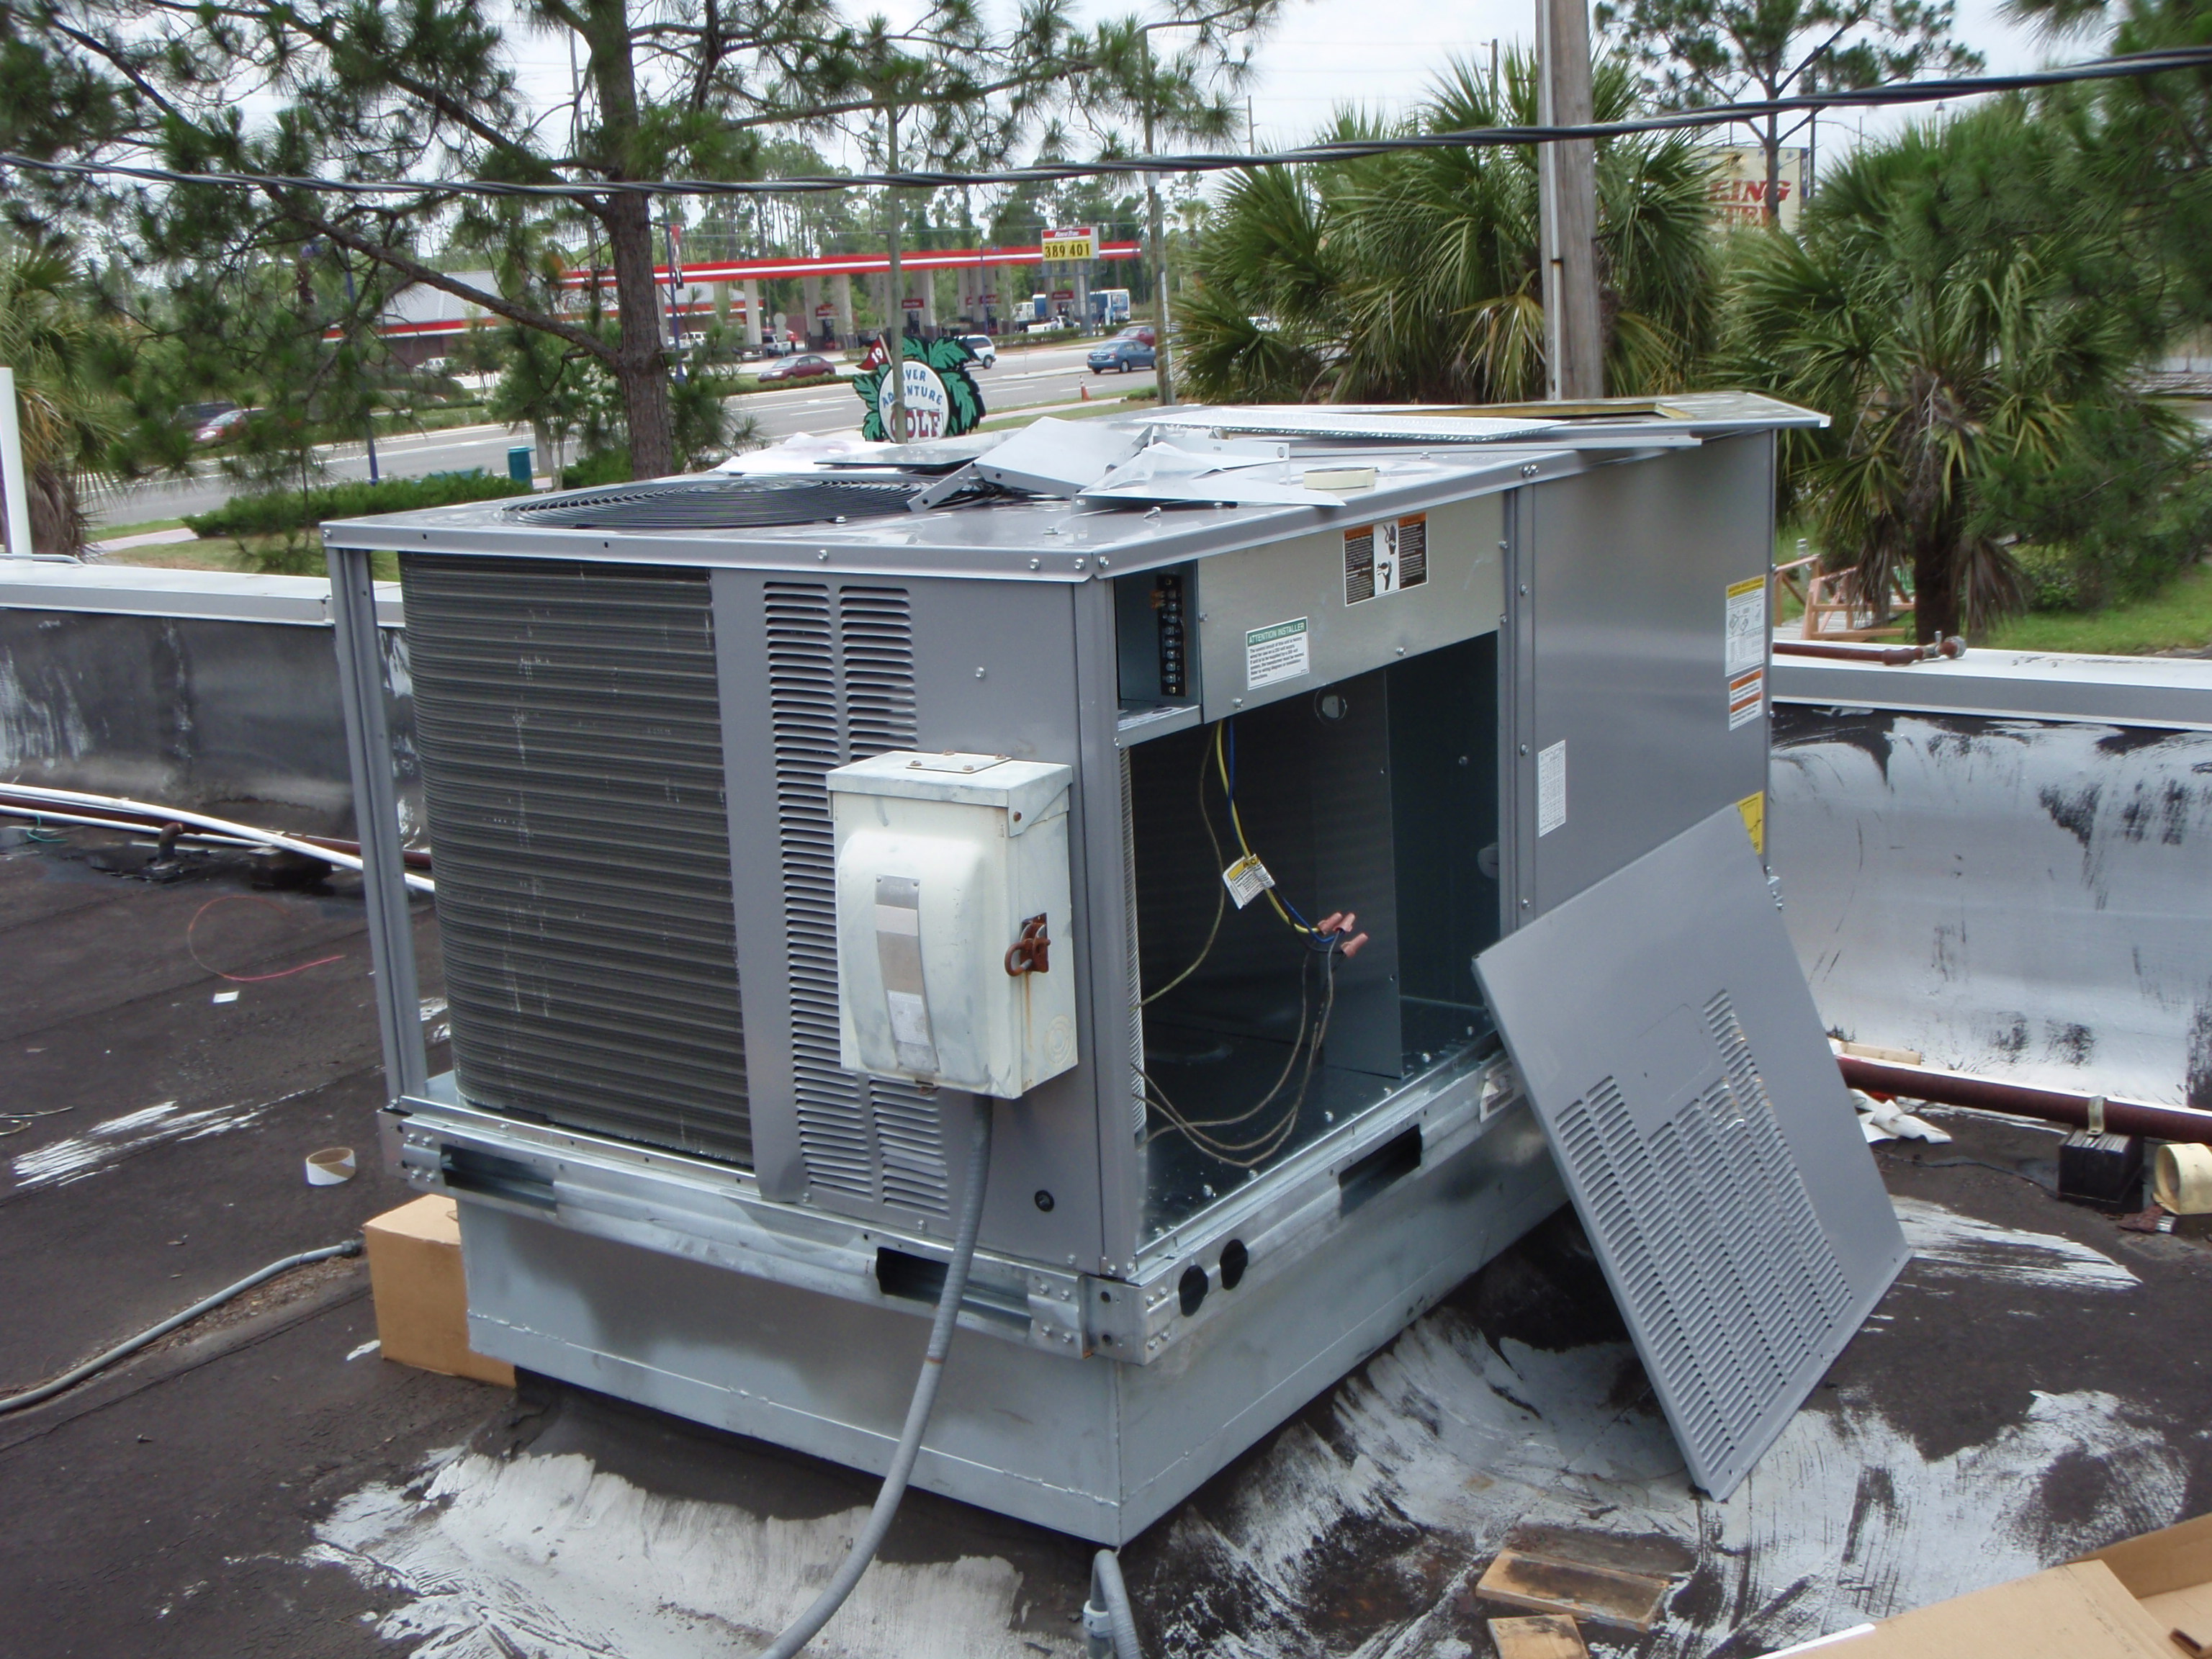 Commercial Air Conditioning and Refrigeration Brands Serviced and Sold  #4C5C3C